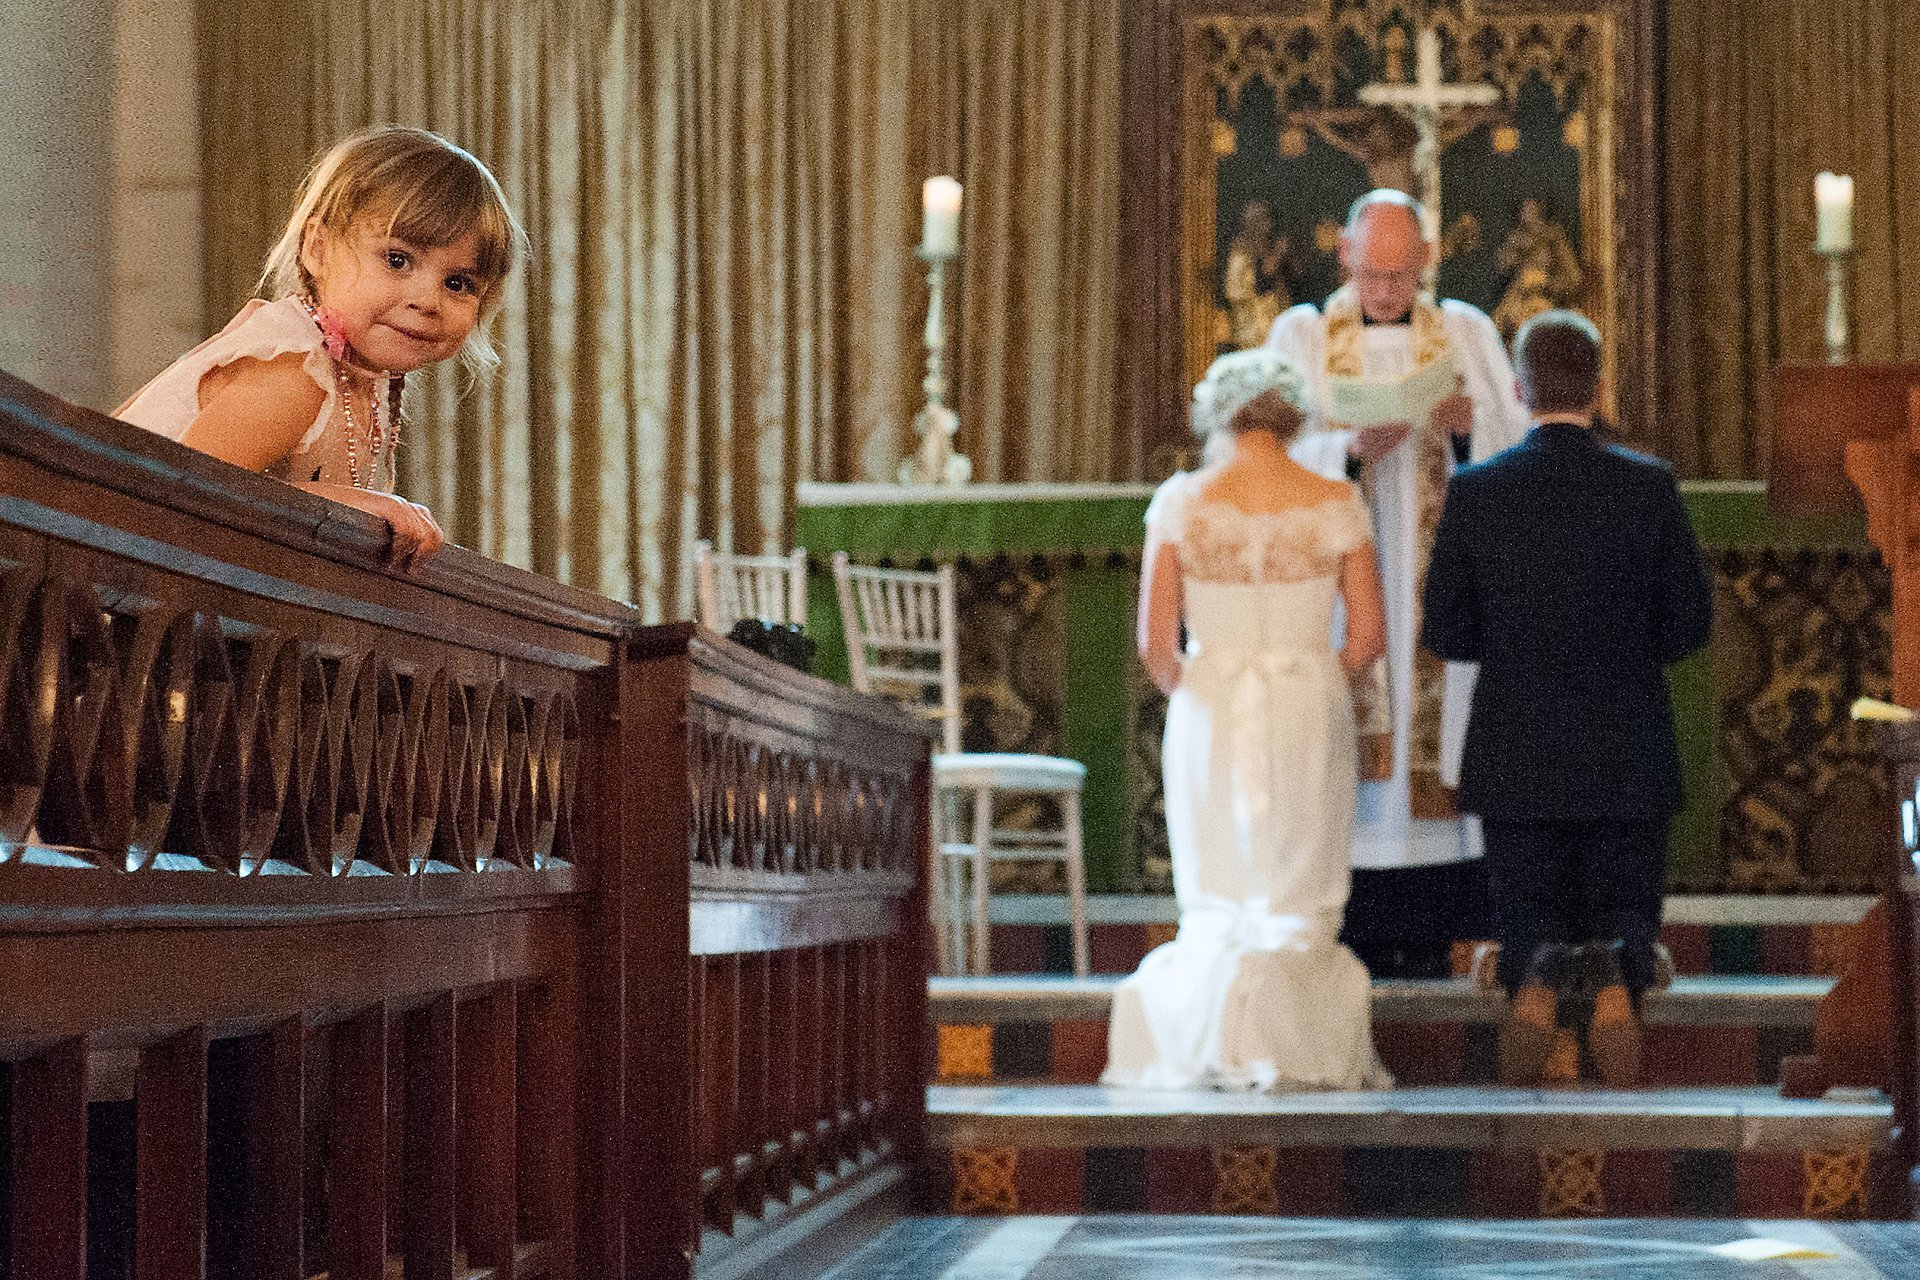 While the bride and groom receive a blessing in Fulham Palce's Tait Chapel a little girl looks back over the pew - so adorable!